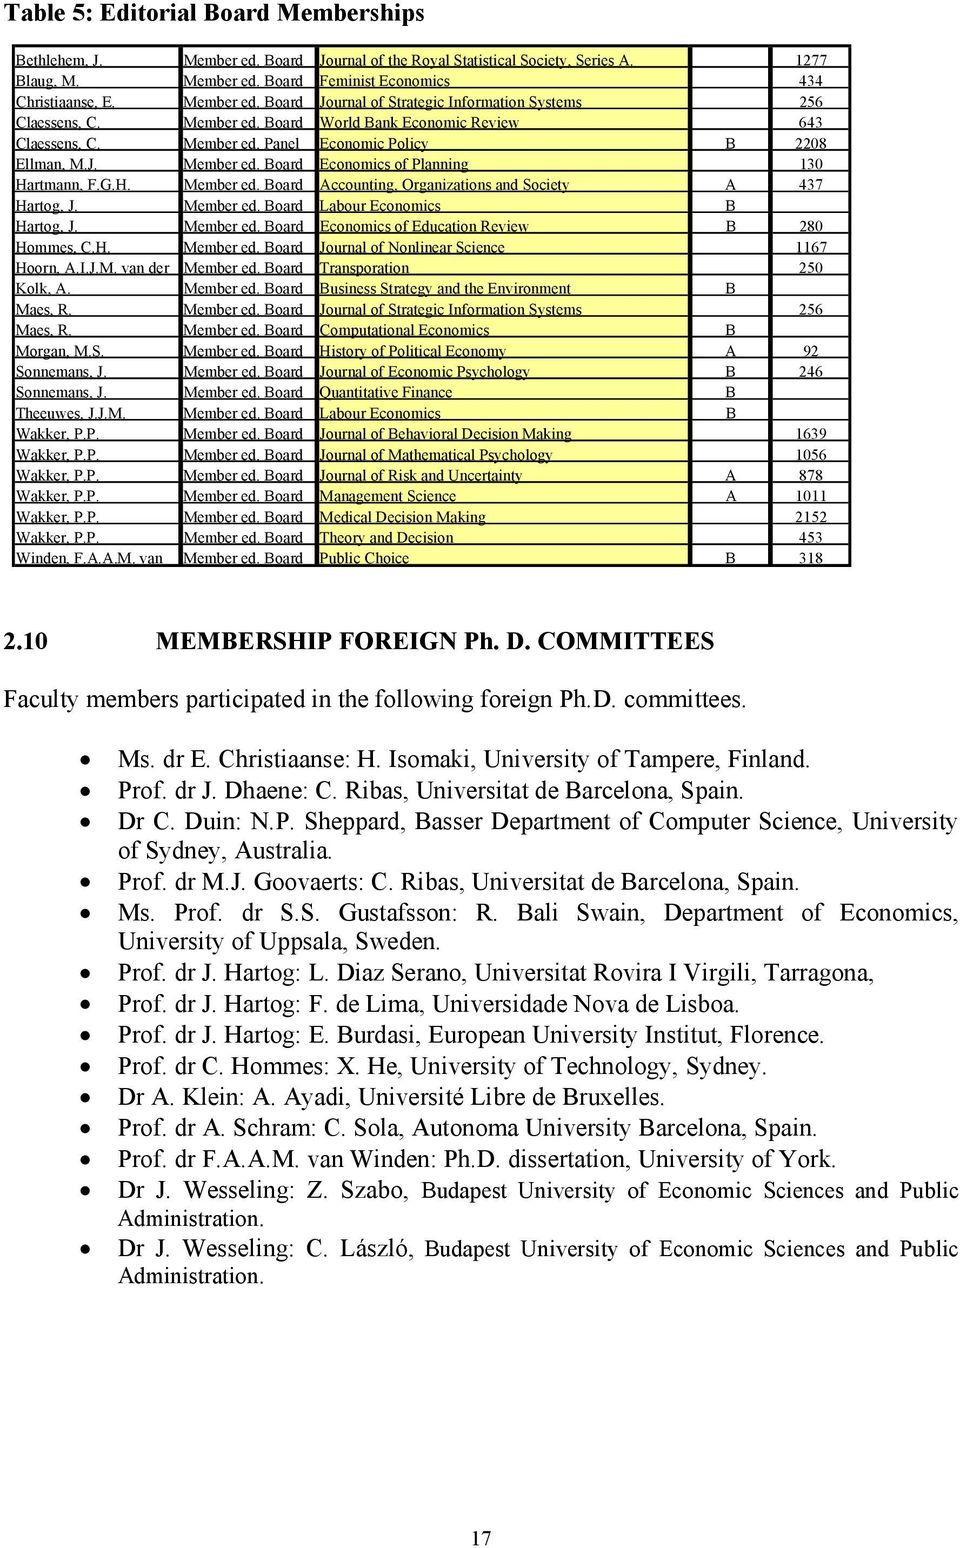 G.H. Member ed. Board Accounting, Organizations and Society A 437 Hartog, J. Member ed. Board Labour Economics B Hartog, J. Member ed. Board Economics of Education Review B 280 Hommes, C.H. Member ed. Board Journal of Nonlinear Science 1167 Hoorn, A.